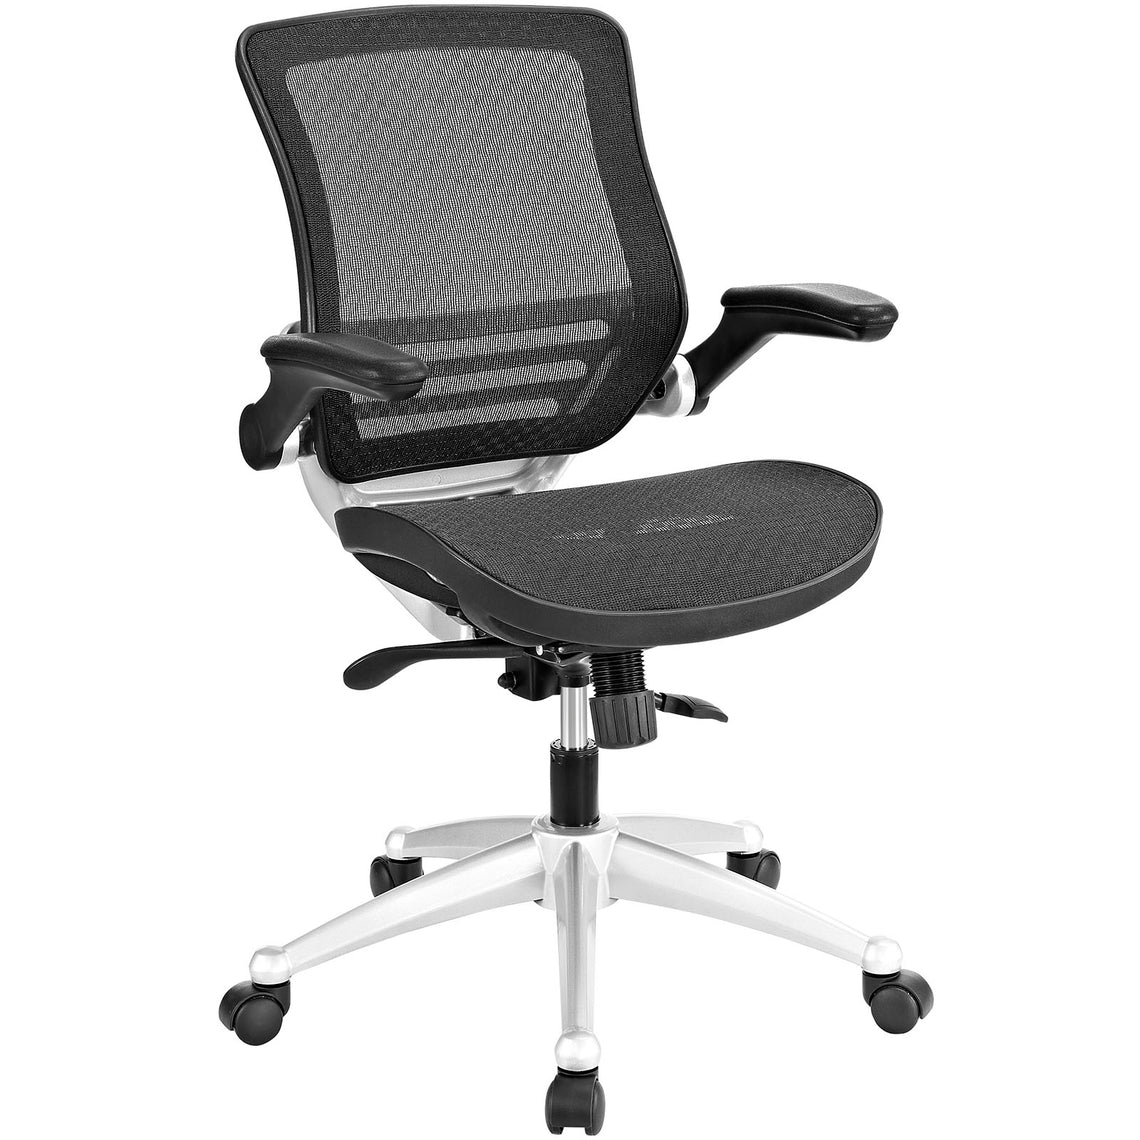 Edge All Mesh Office Chair for Best Comfort at BUILDMyplace